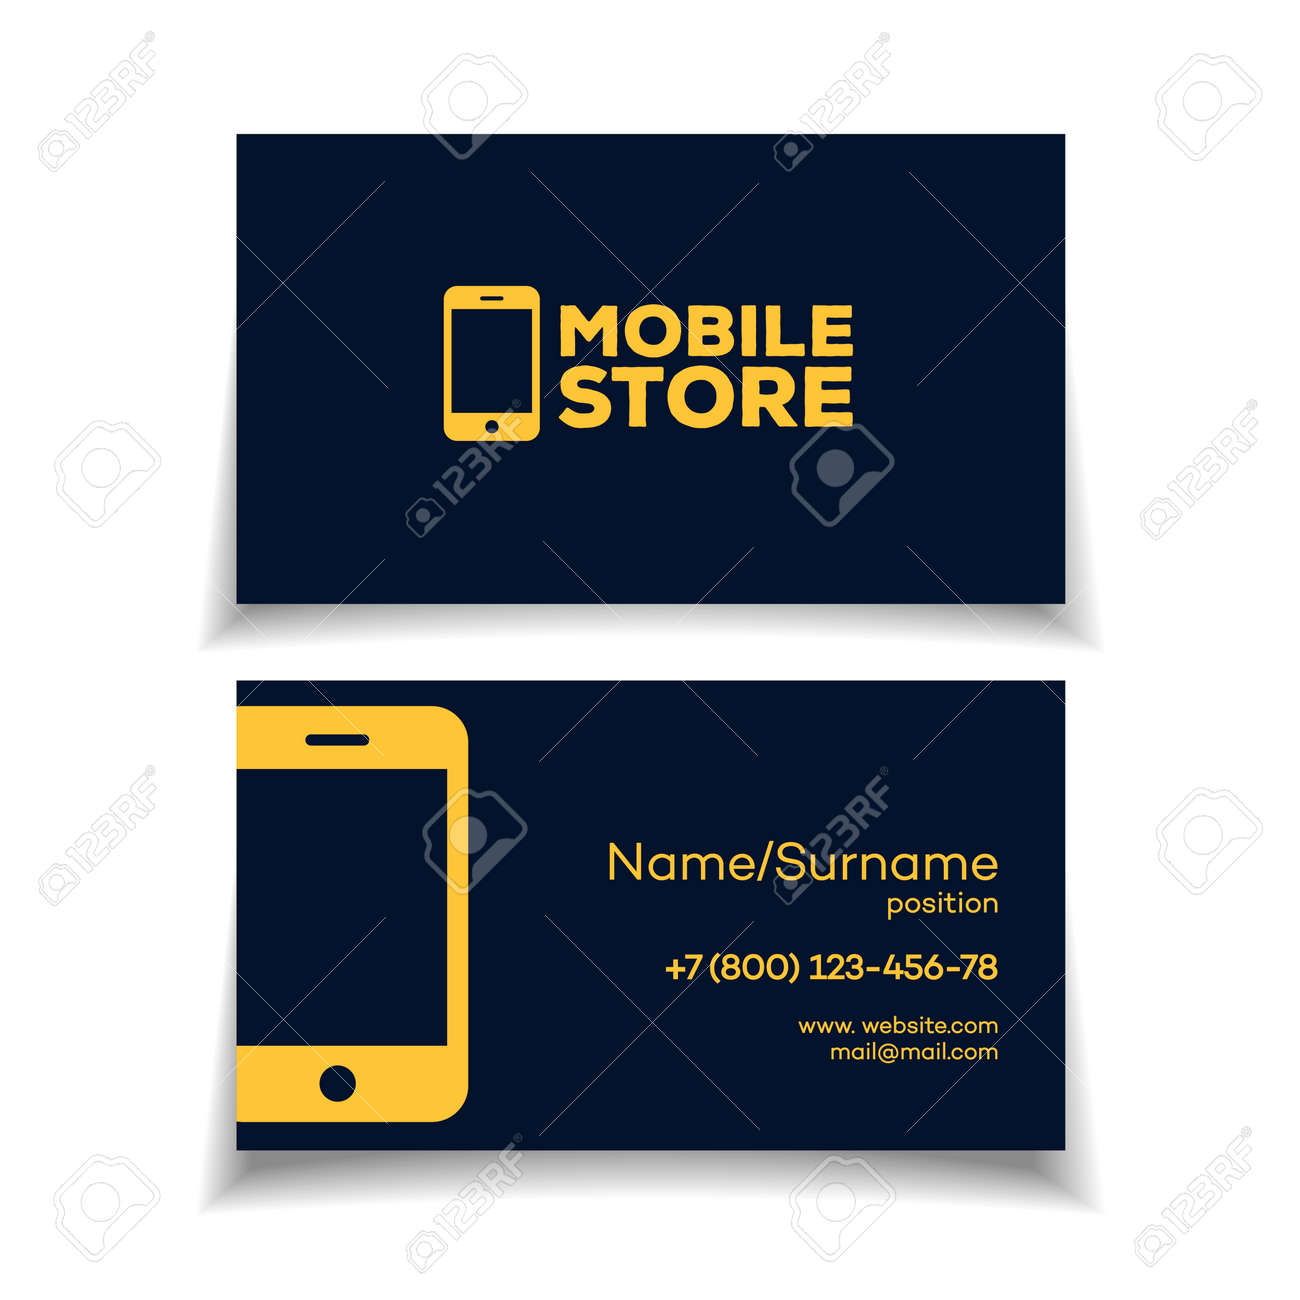 Mobile Store Business Card Design Template With Smartphone Logo